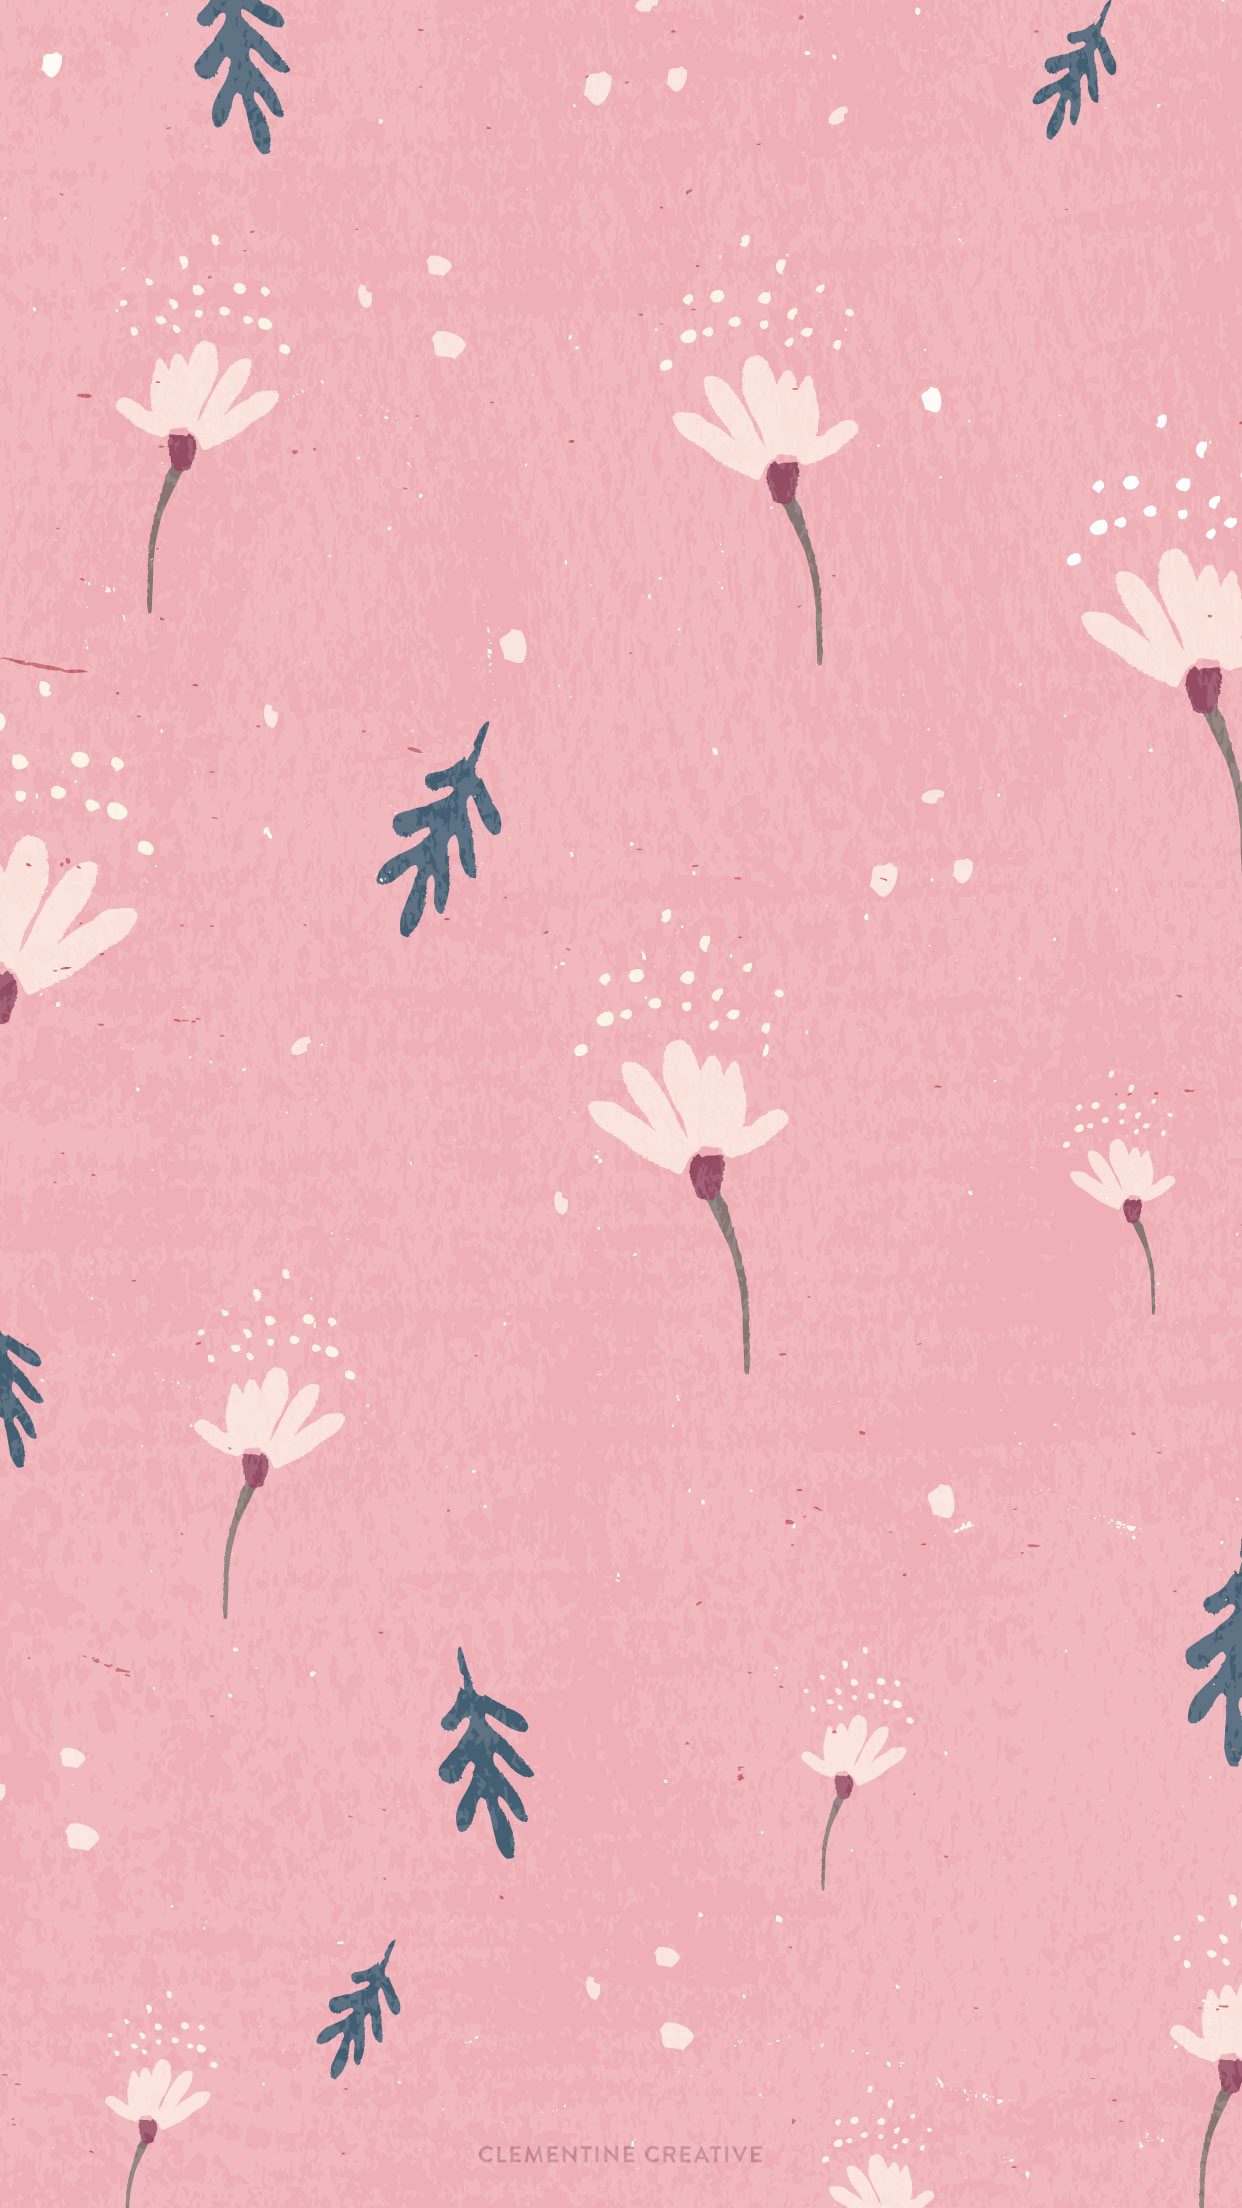 Free Wallpaper: Dainty Falling Flowers